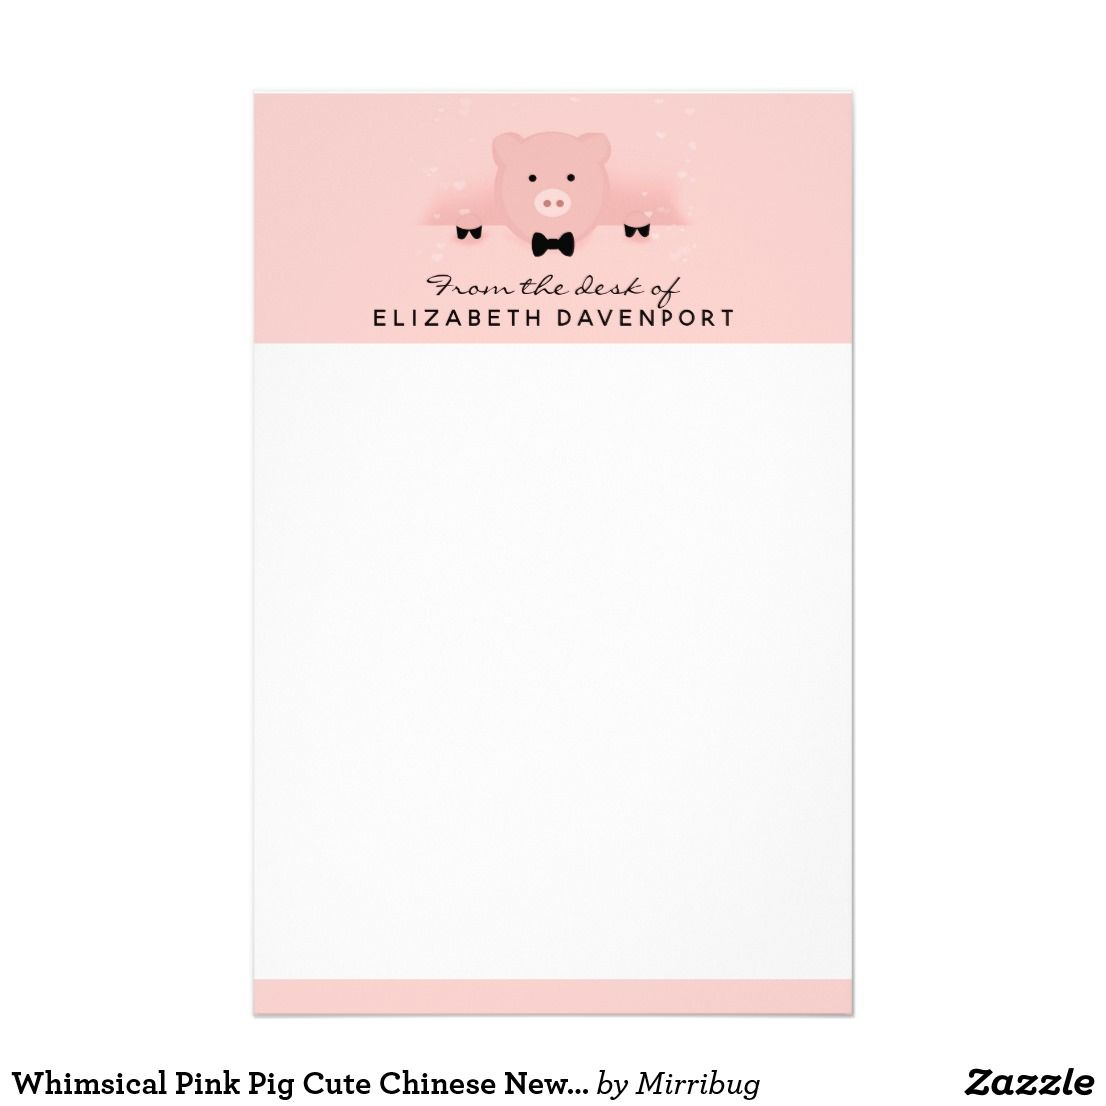 Whimsical Pink Pig Cute Chinese New Year Stationery | zazzle post-it ...